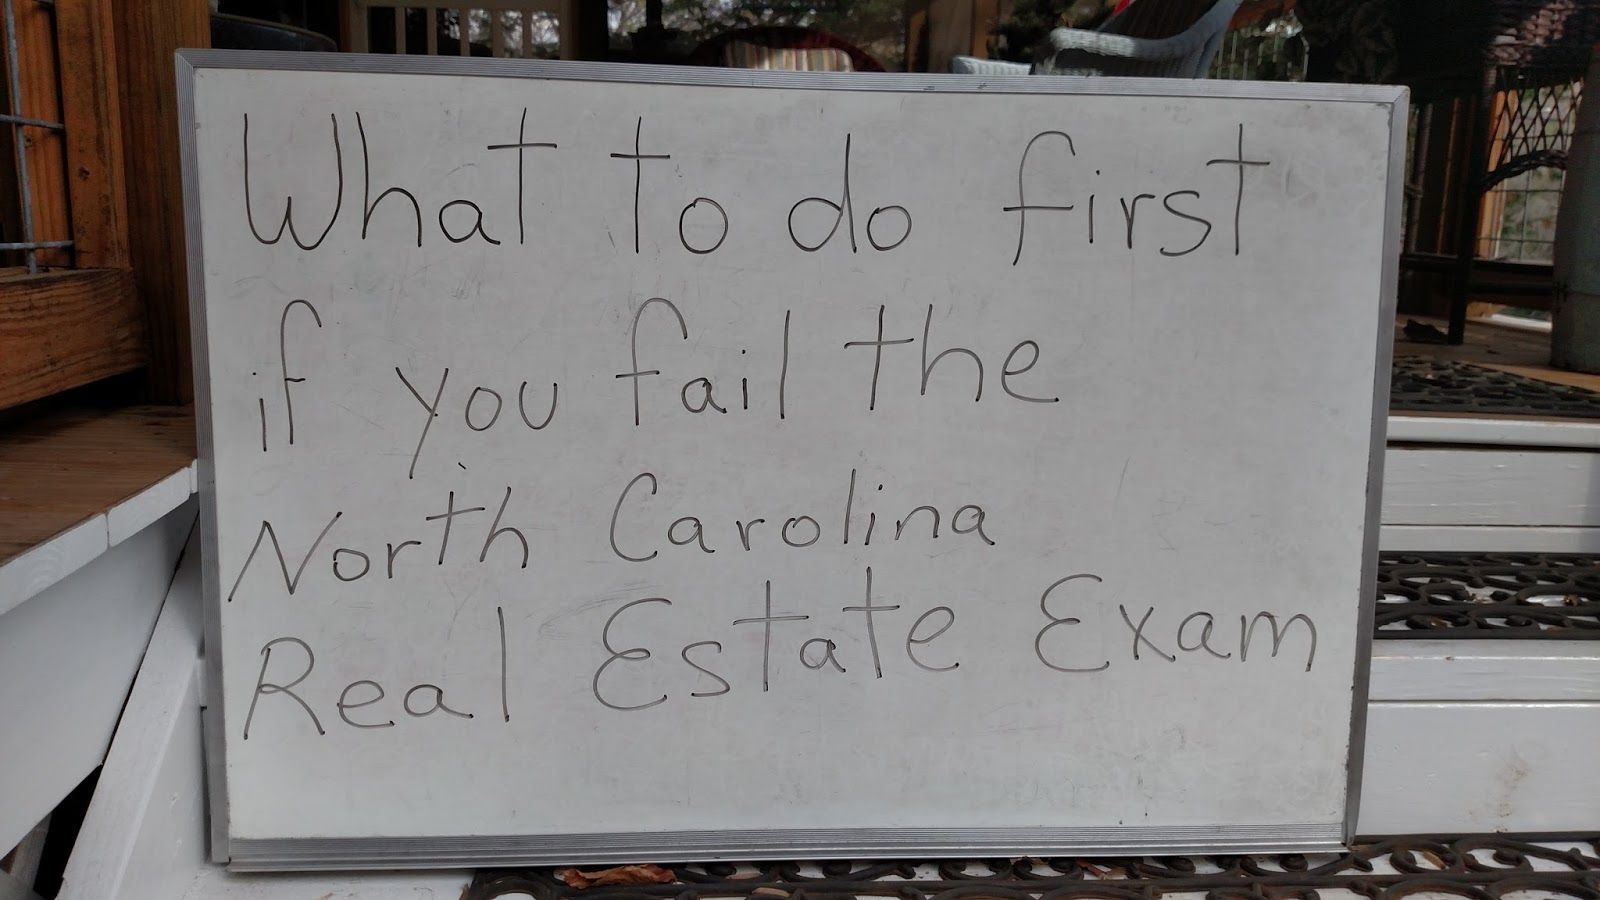 Ron Climer Mountain Messages Real estate exam, North